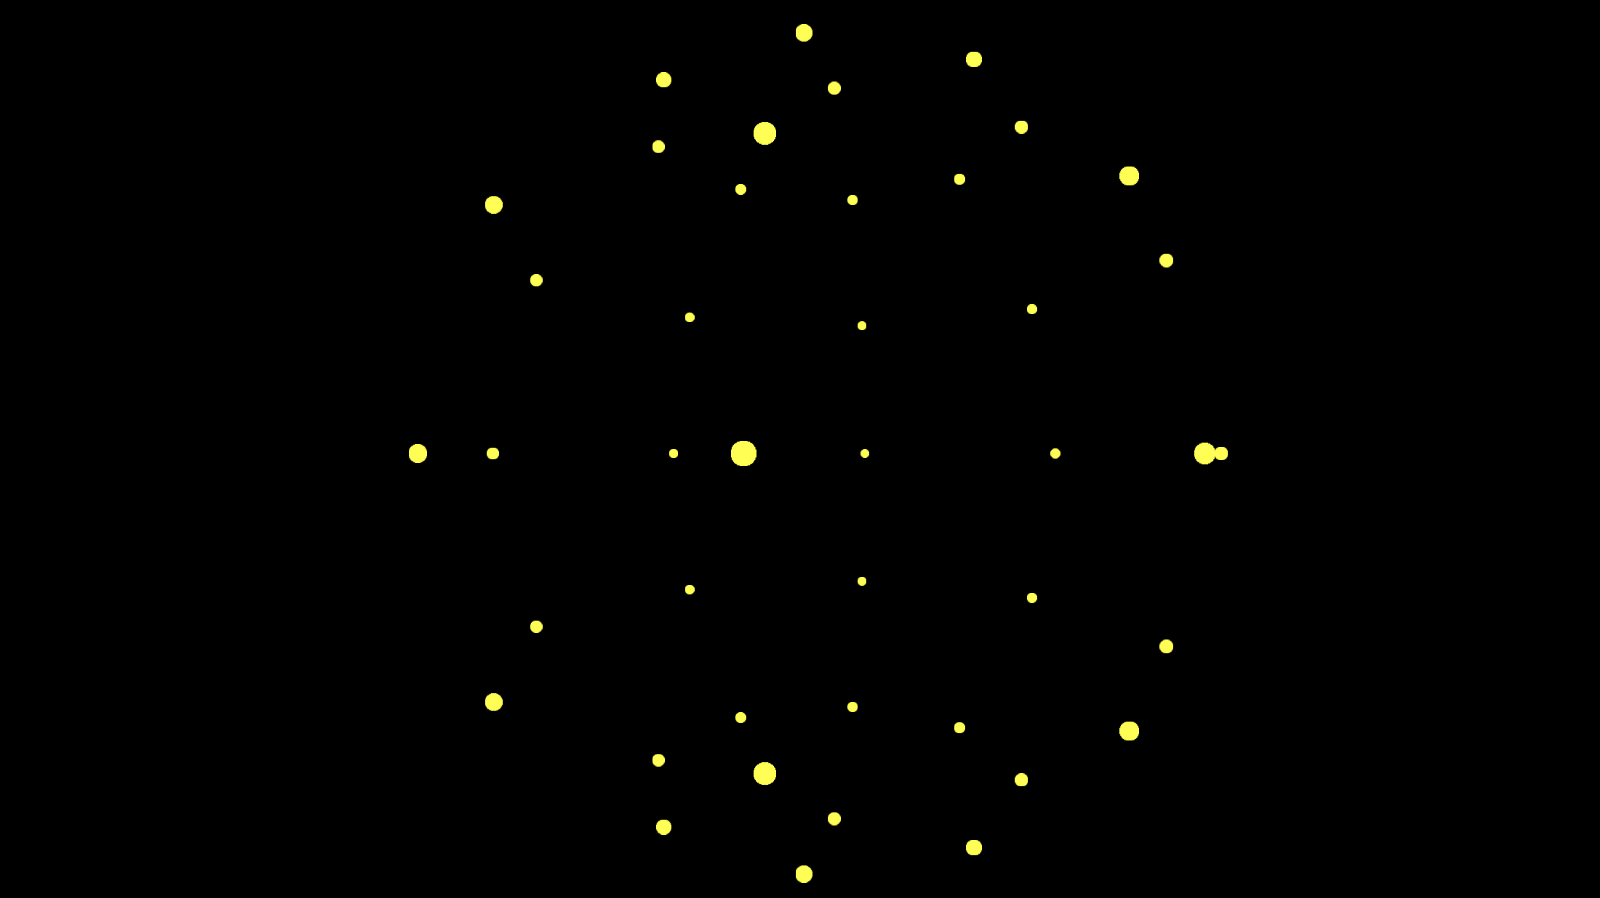 Sphere rendered as points with yellow dot textures.